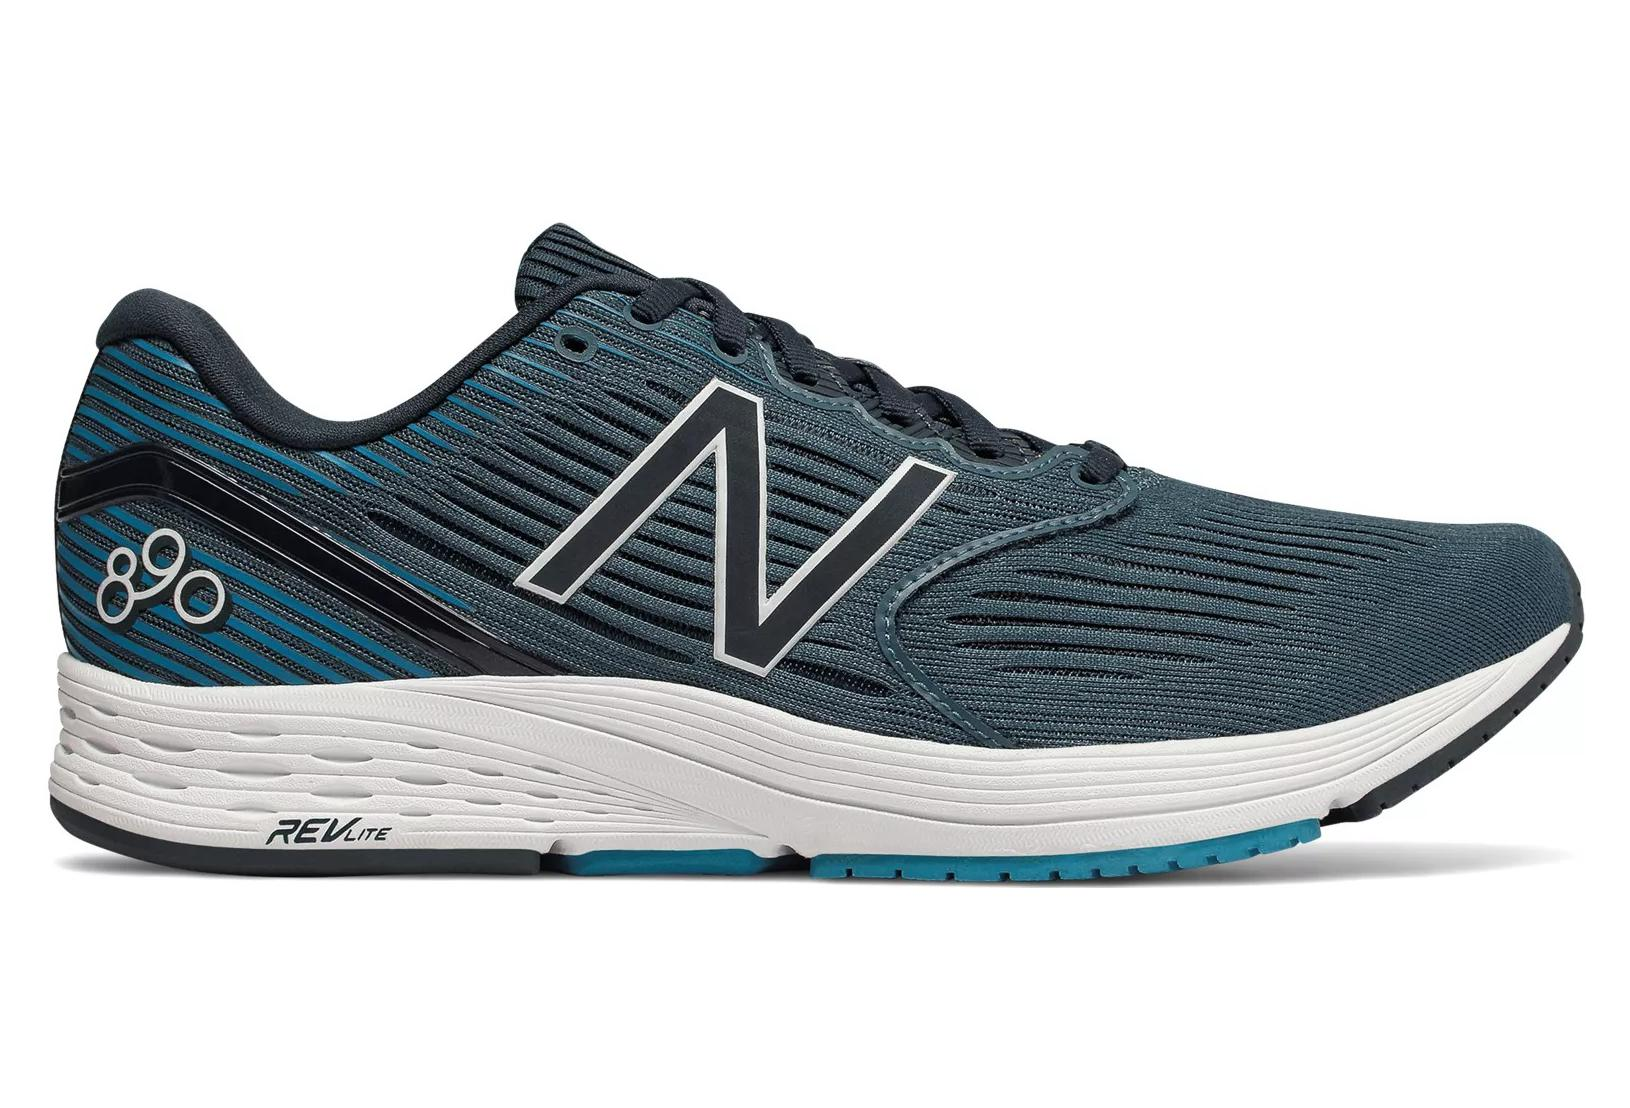 zapatillas new balance 890